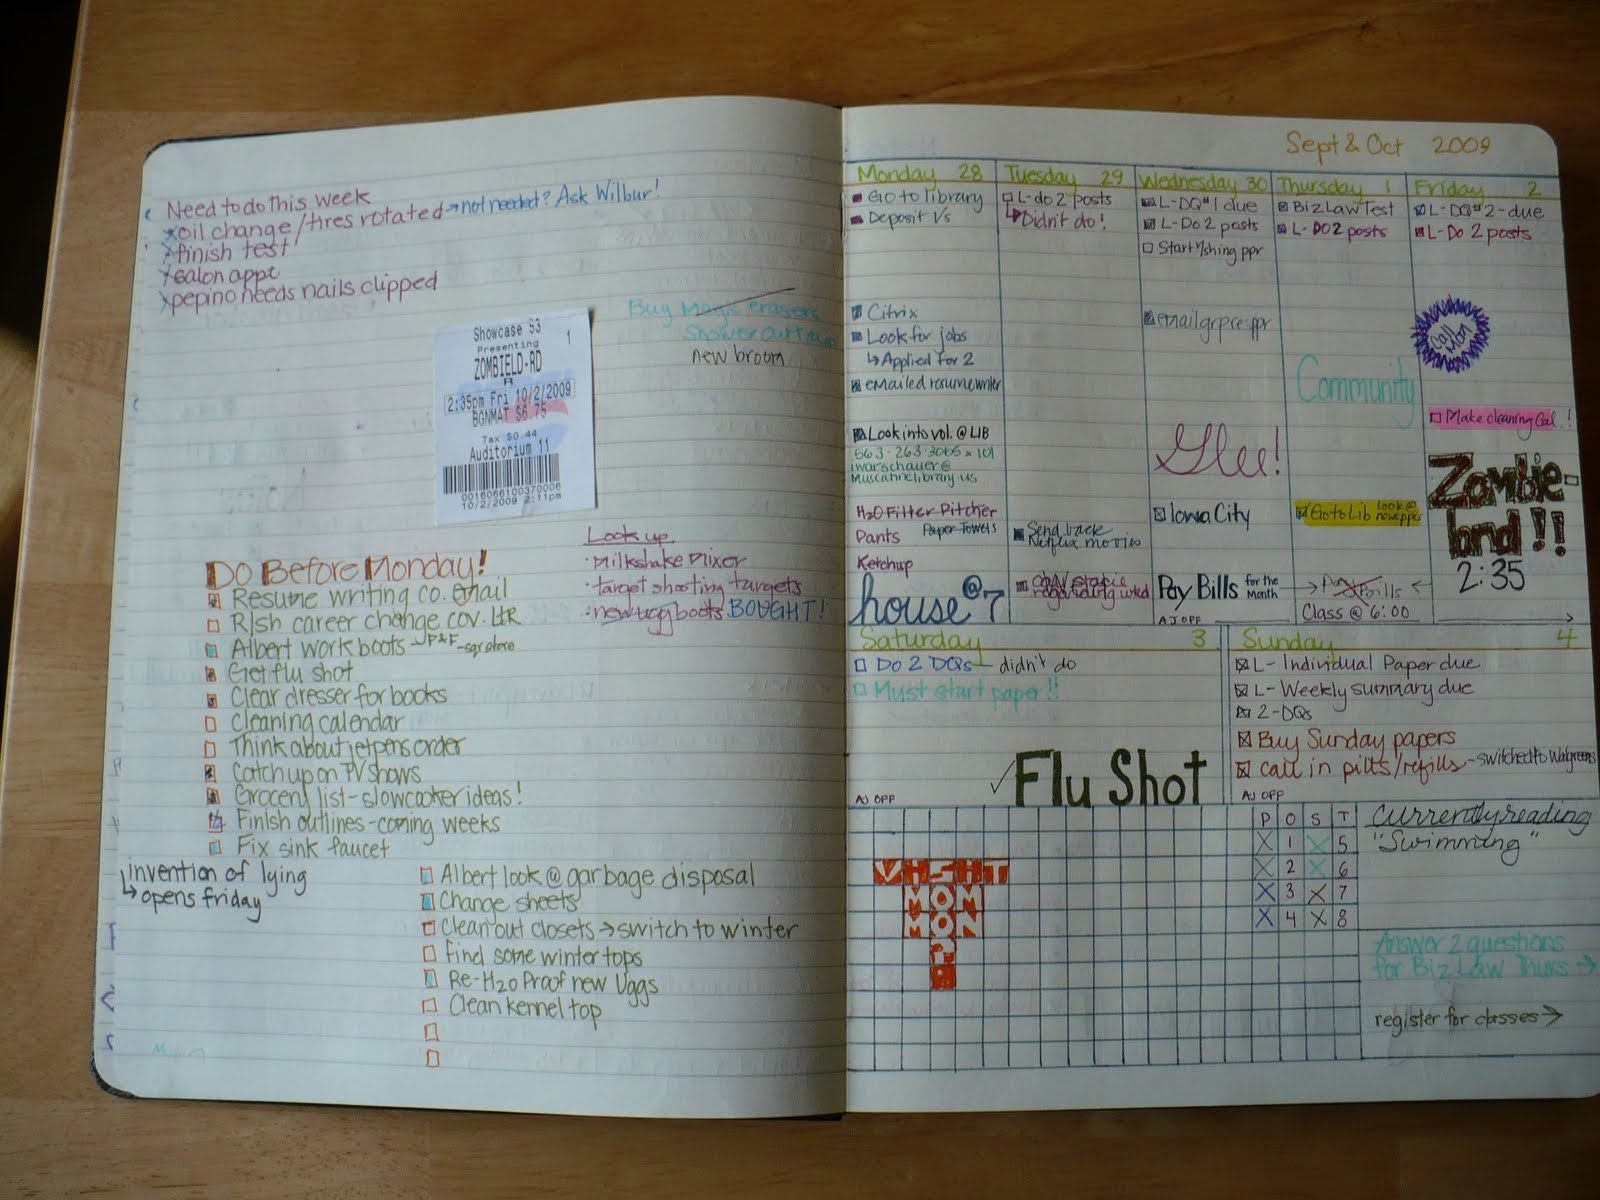 Bad Planner diy planner not a bad idea i am of picky about what i like